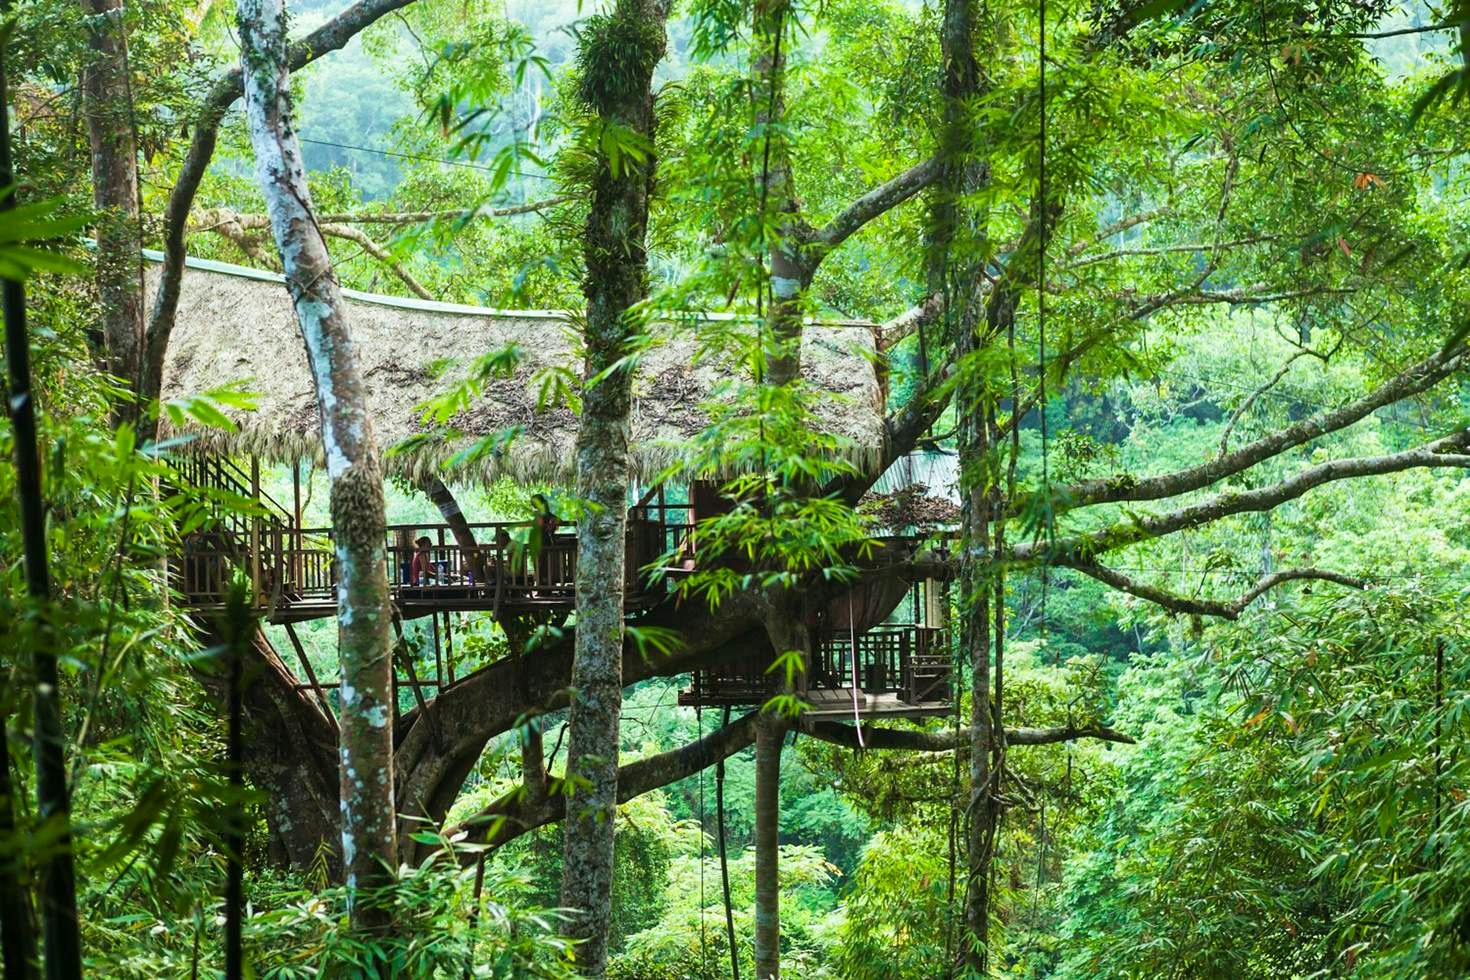 Tree house at the Gibbon Experience